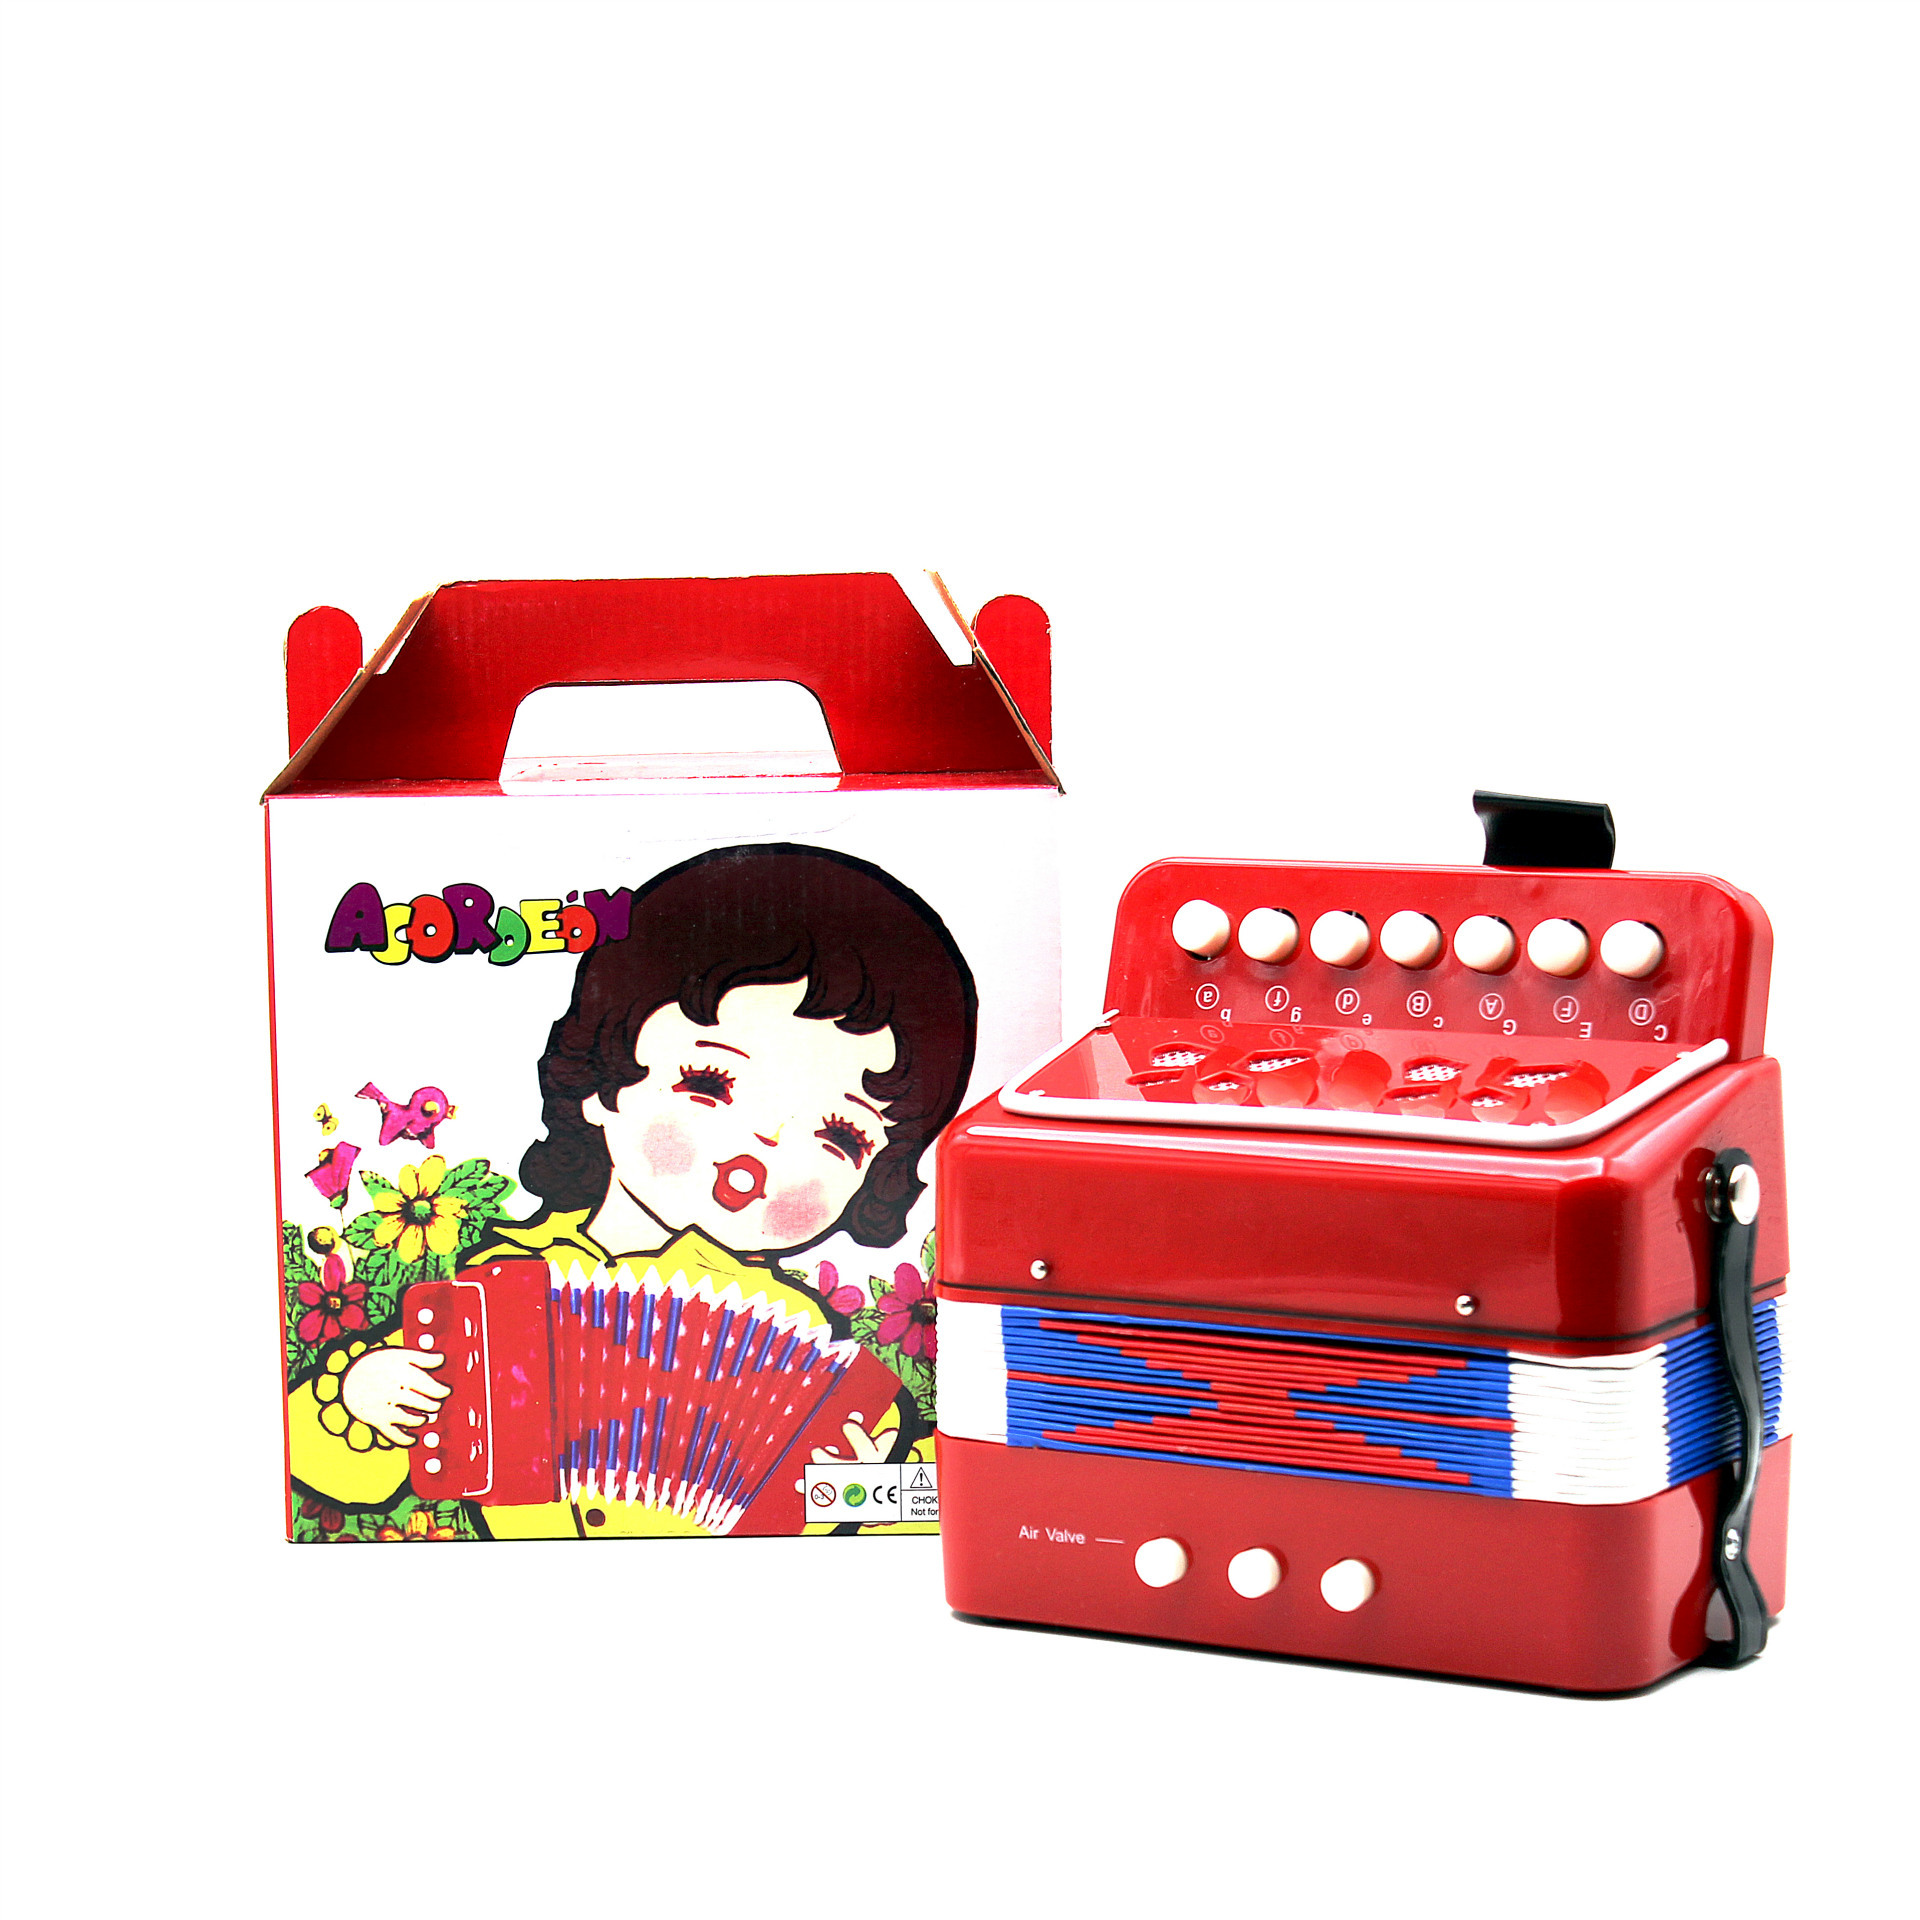 103 CHILDREN'S Toy Accordion Educational Play Hand-Style Lian Xi Qin